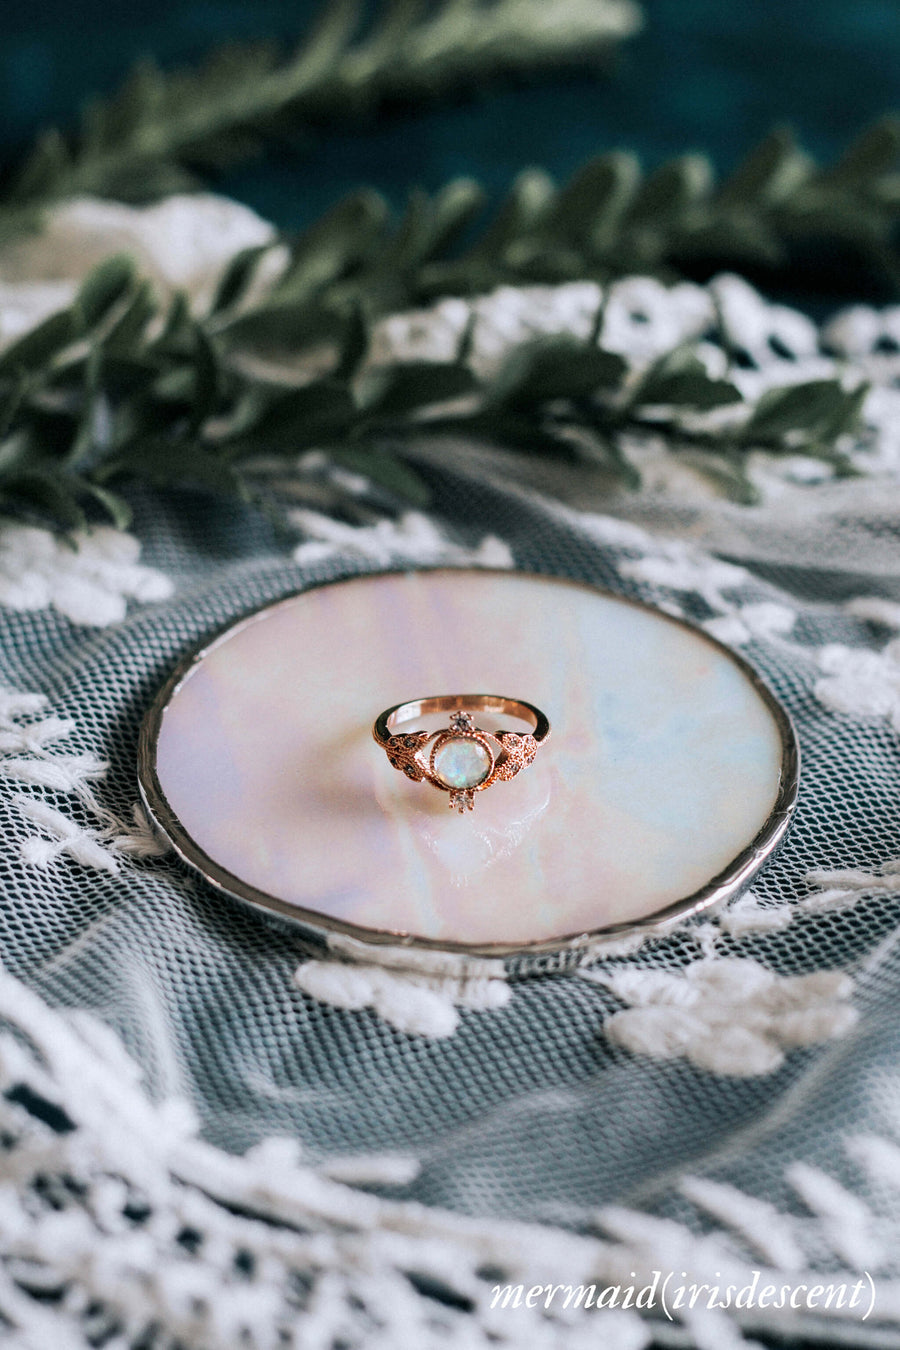 mermaid ring dish